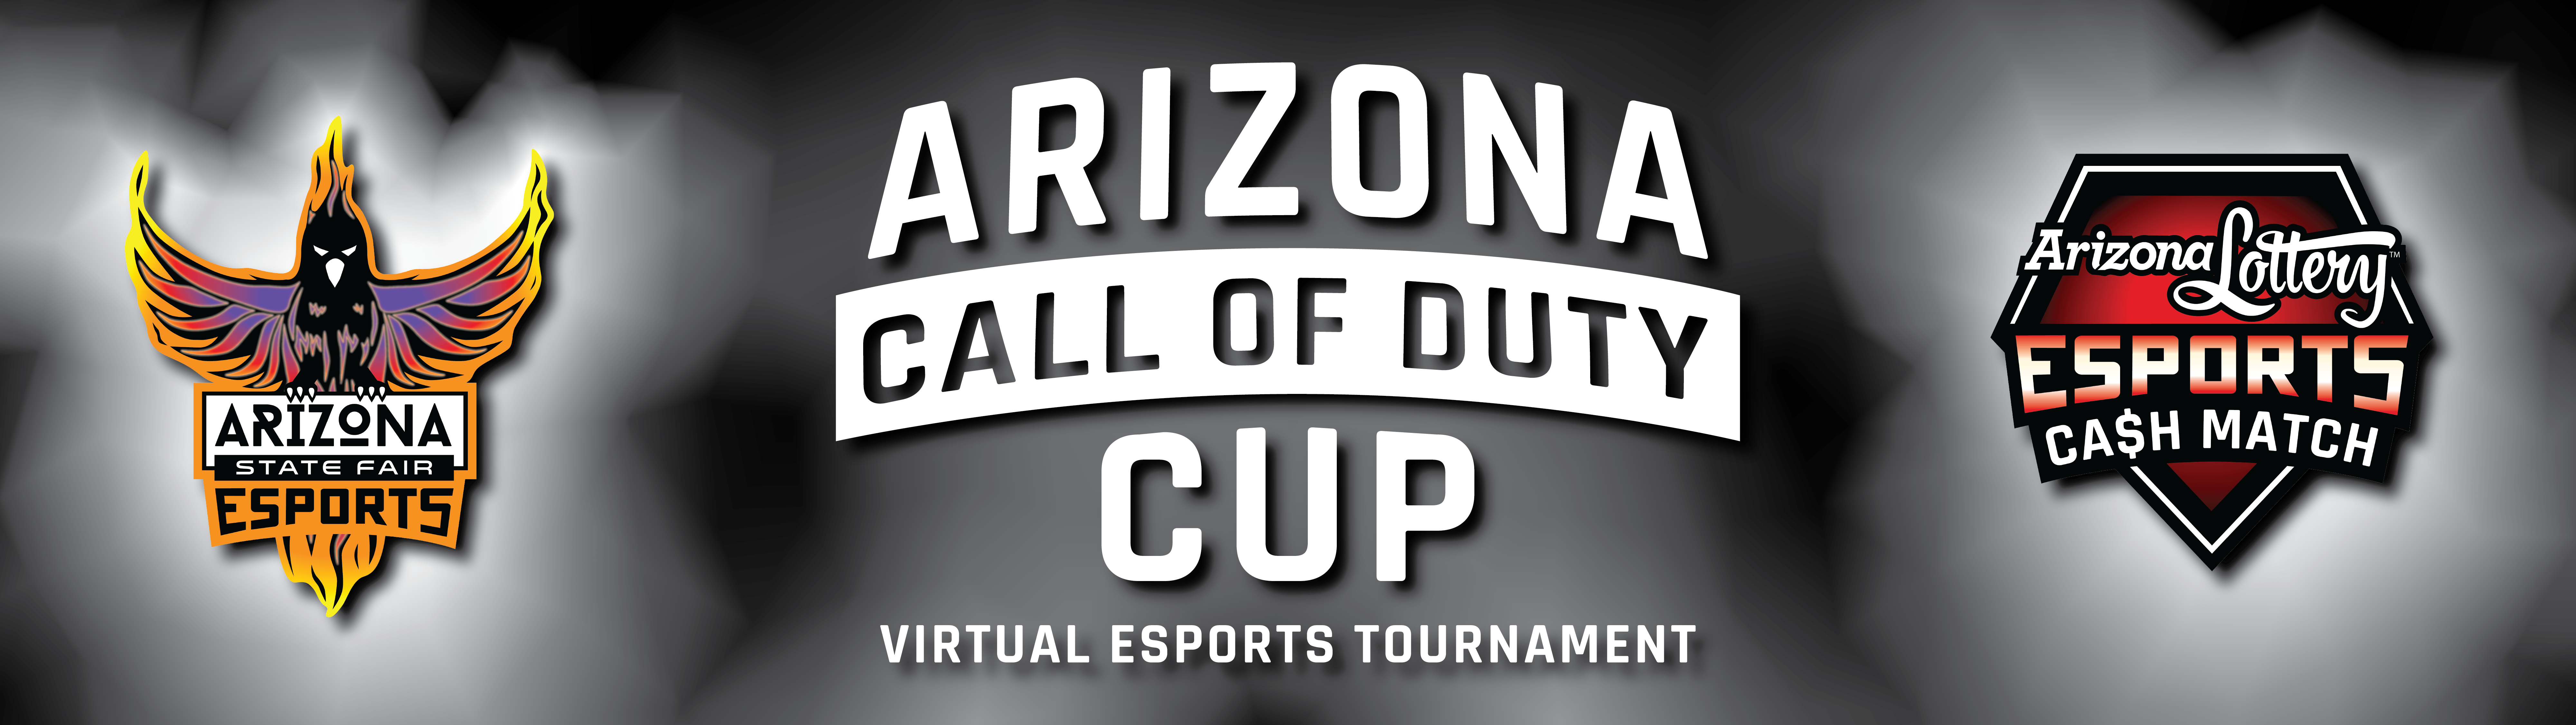 AZ Lottery Esports Call of Duty Banner